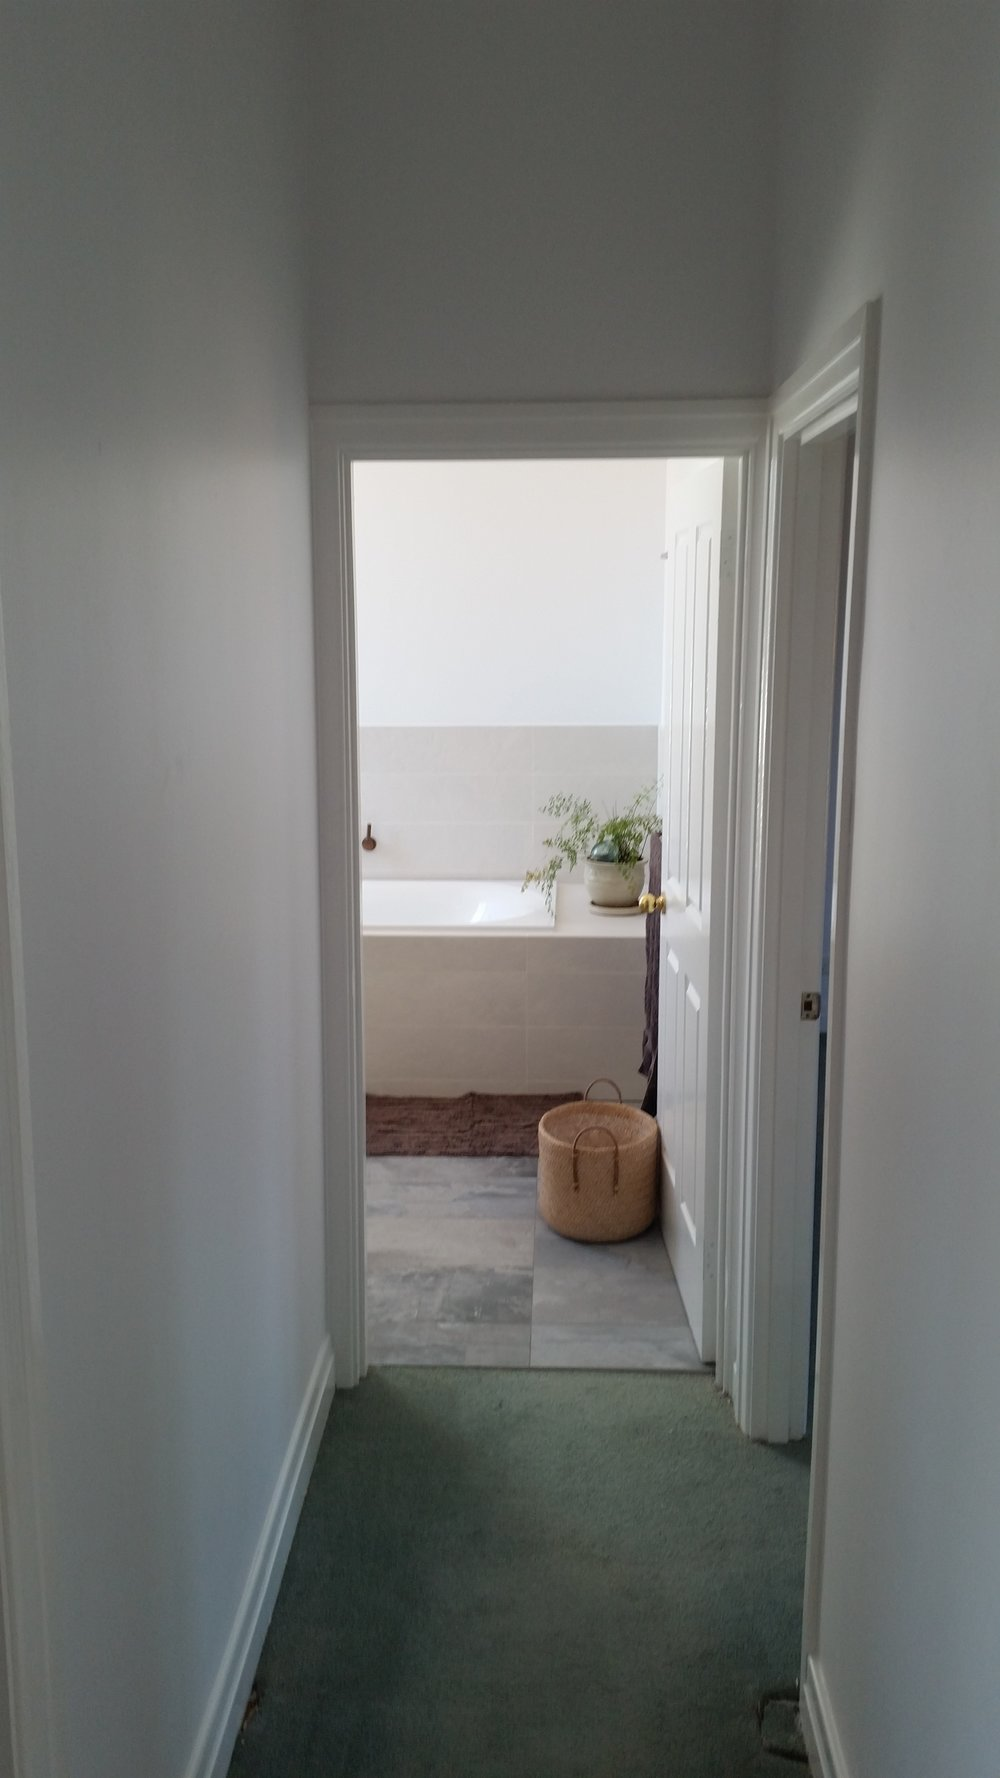 Bathroom renovation after - Doorway into bathroom